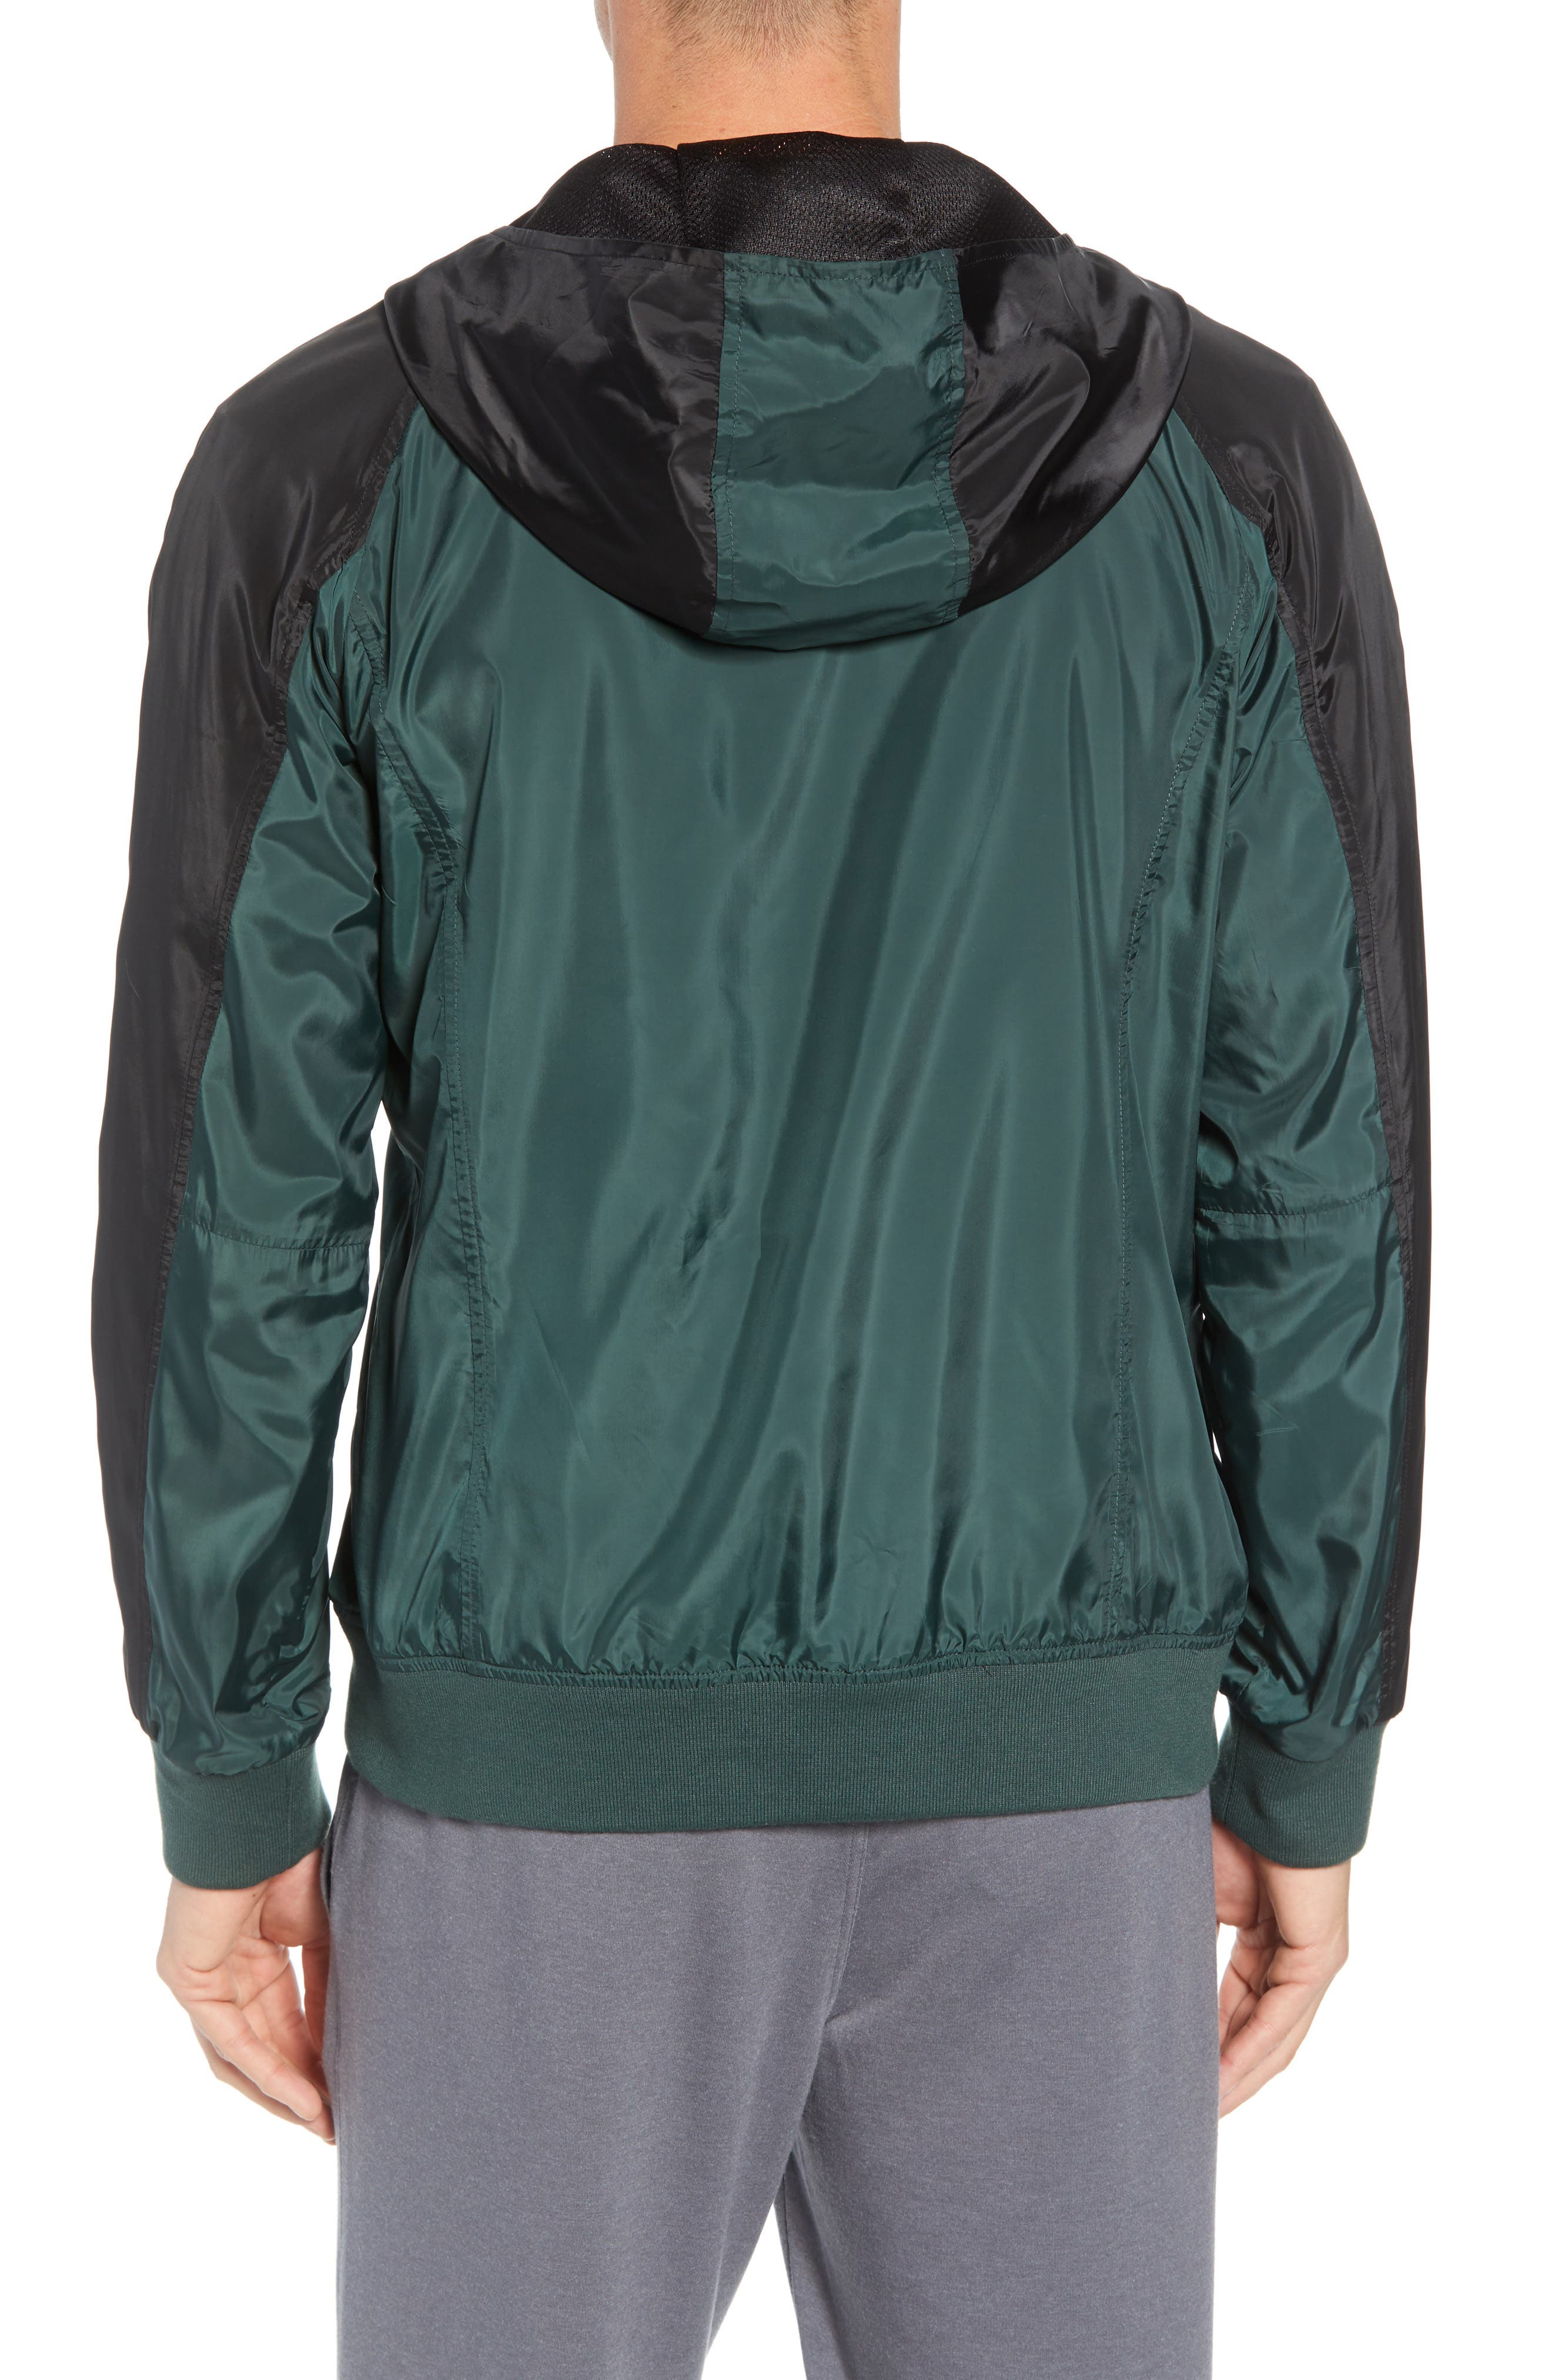 Colorblock Hooded Windbreaker Jacket,                             Alternate thumbnail 2, color,                             BLACK GREEN ODINITE